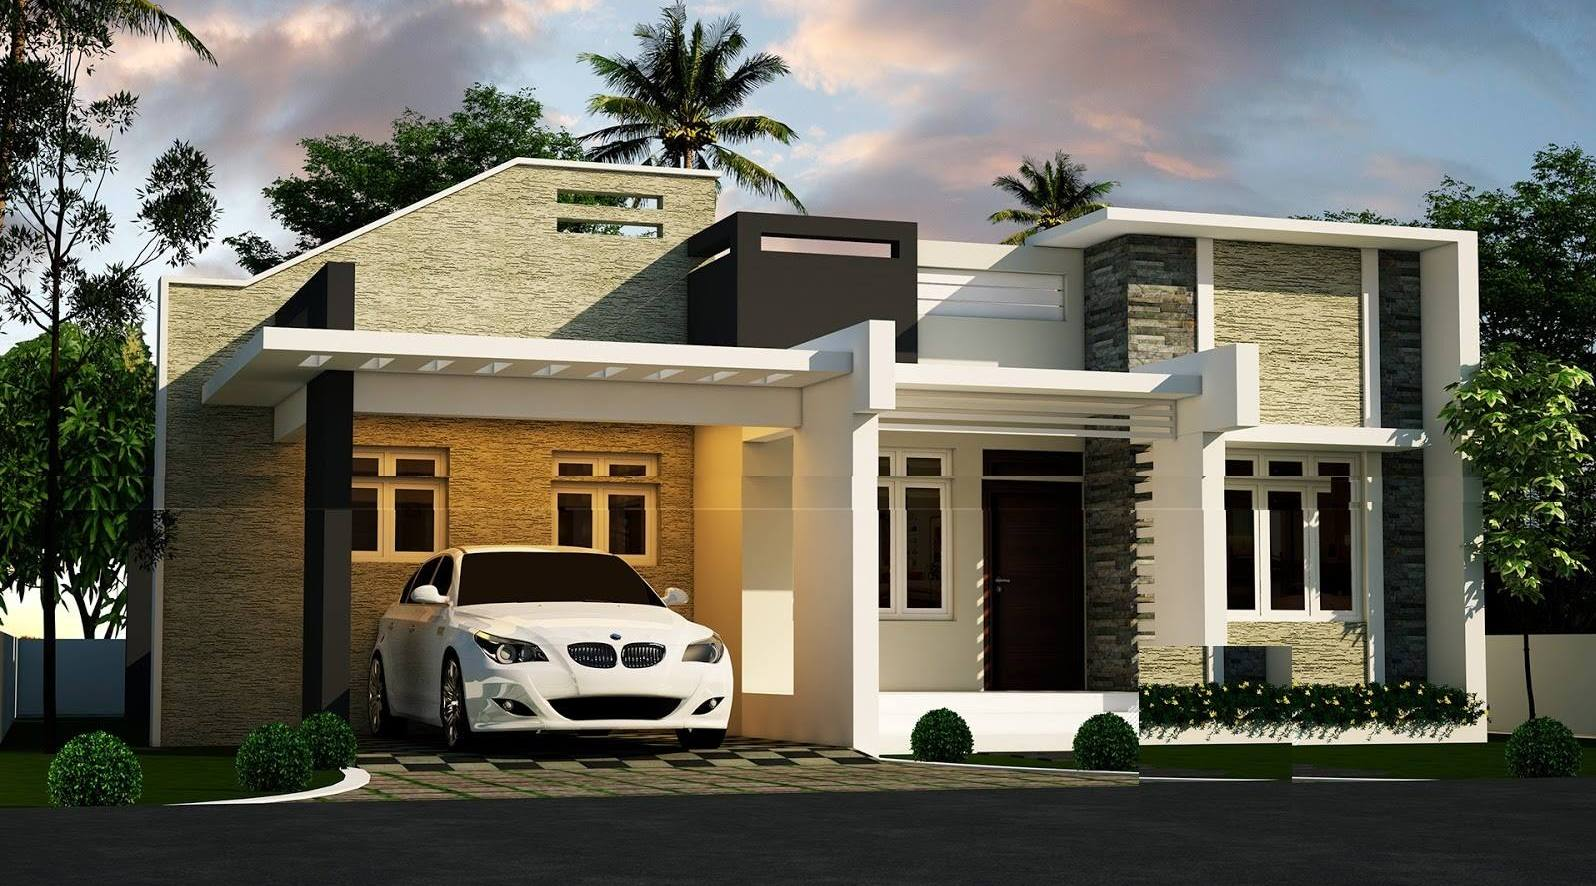 842 Square Feet 2 Bedroom Contemporary Modern Home Design and Plan